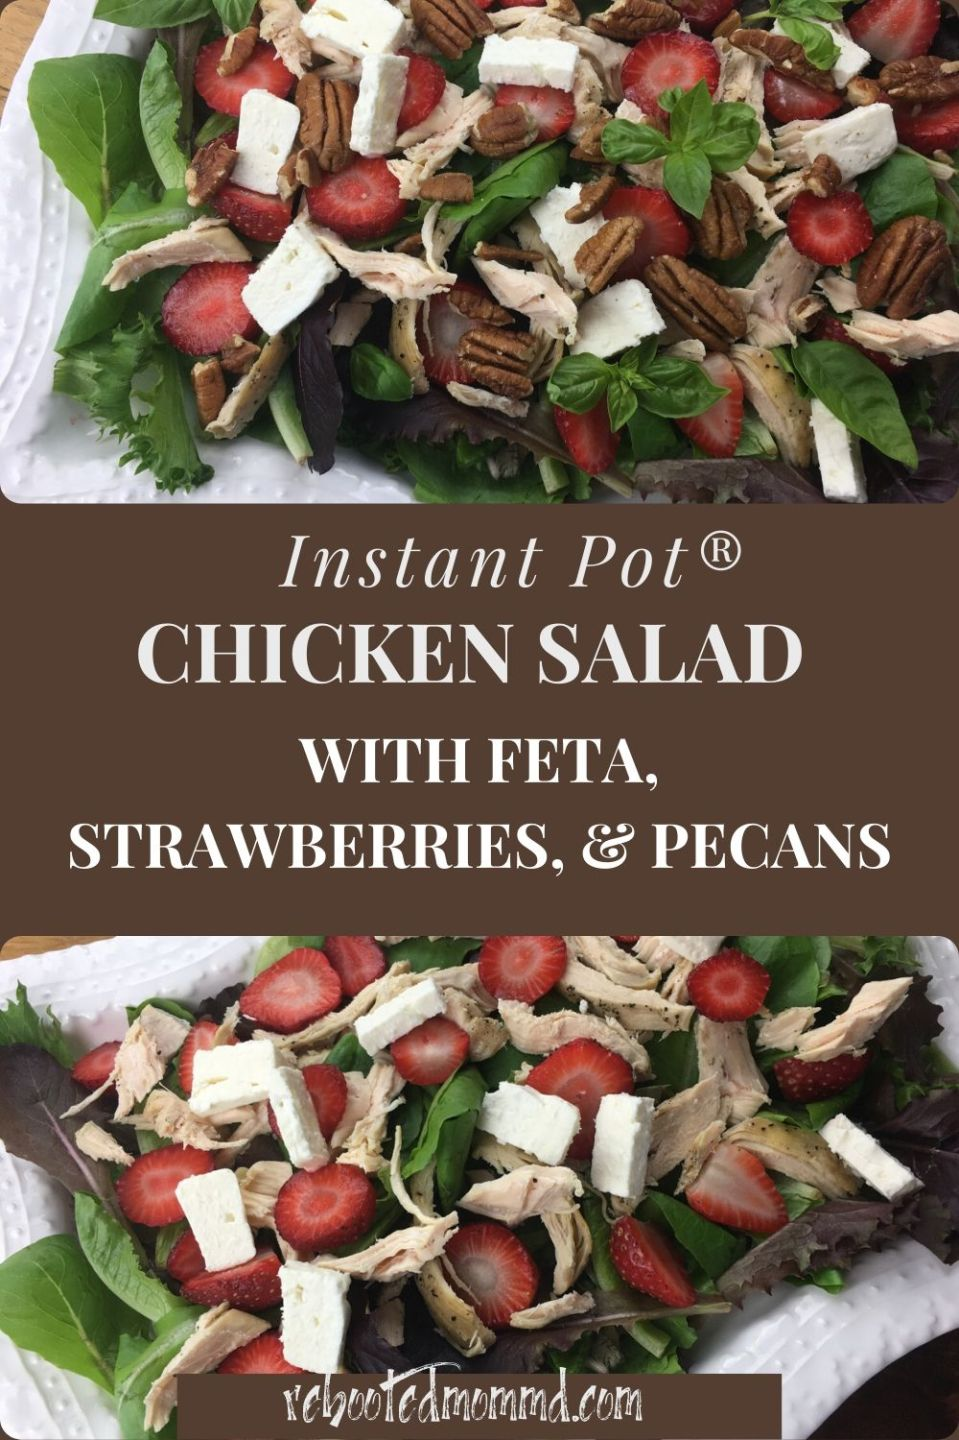 A Chicken Salad with Strawberries, Feta, & Pecans Using an Instant Pot®